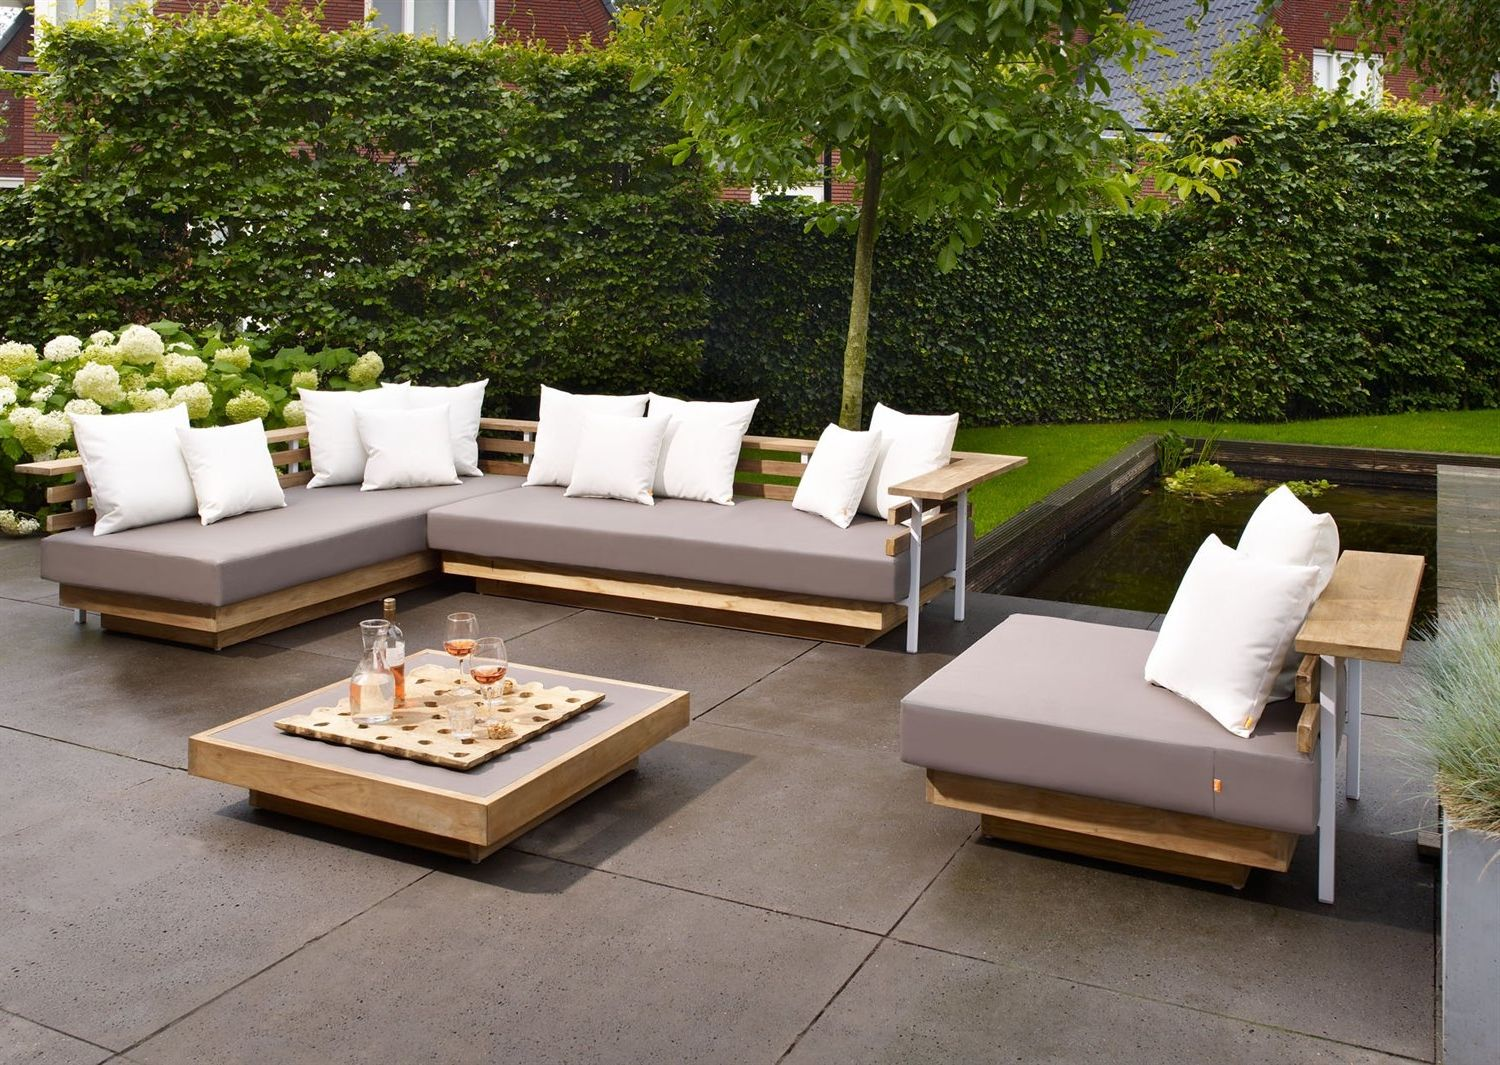 Inspiration Patio Lounge Furniture For Interior Designing Home Ideas With Patio  Lounge Furniture